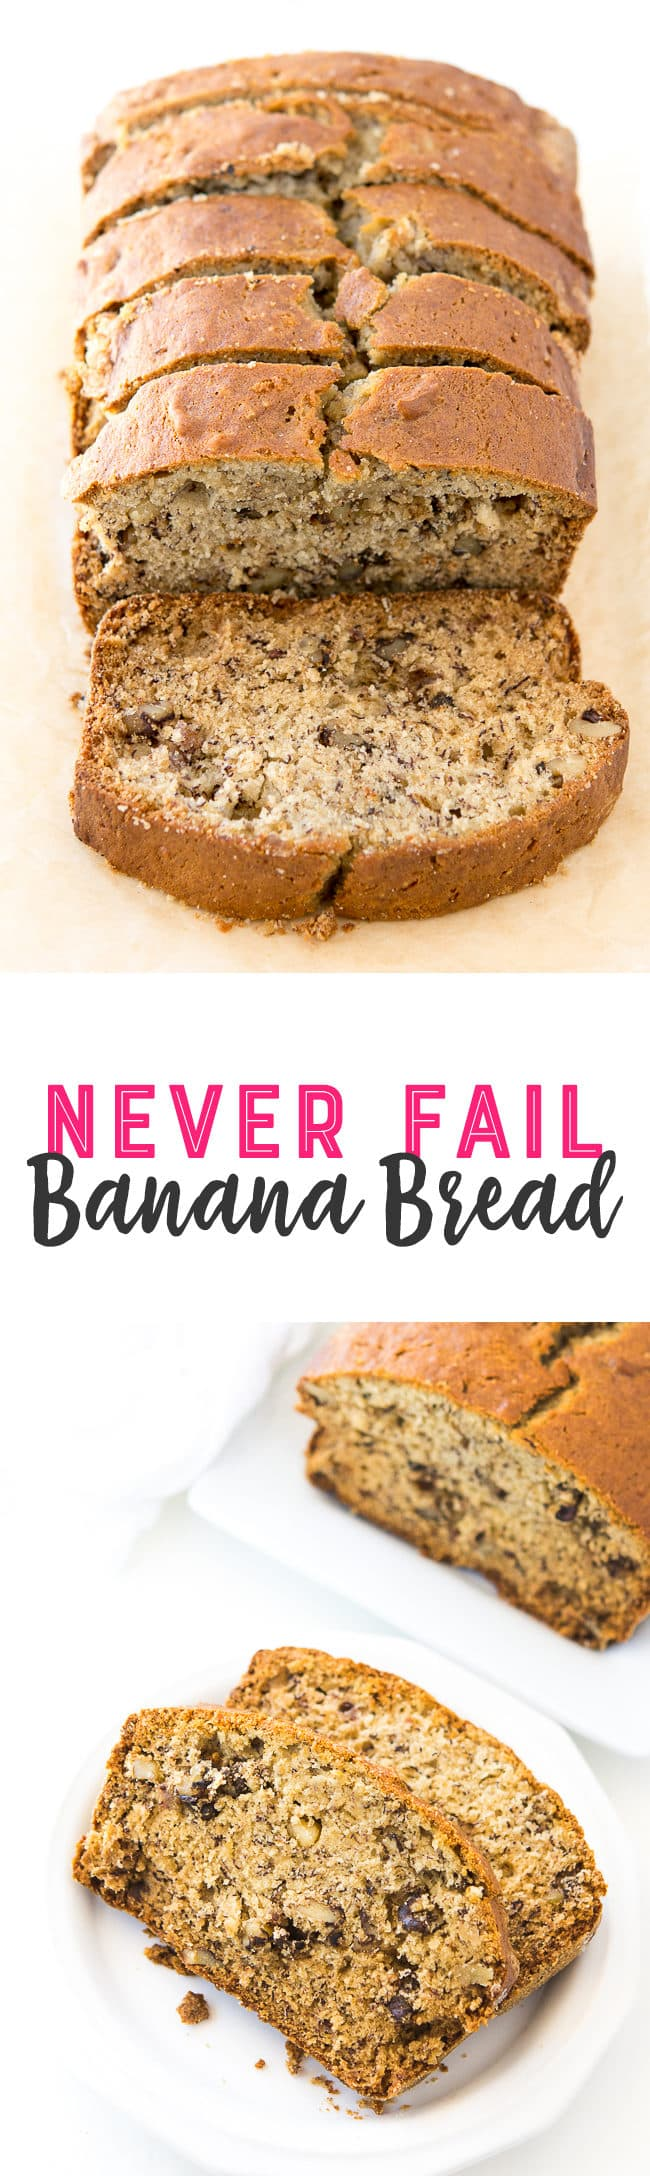 Never Fail Banana Nut Bread Recipe - This simple banana bread is moist and delicious.